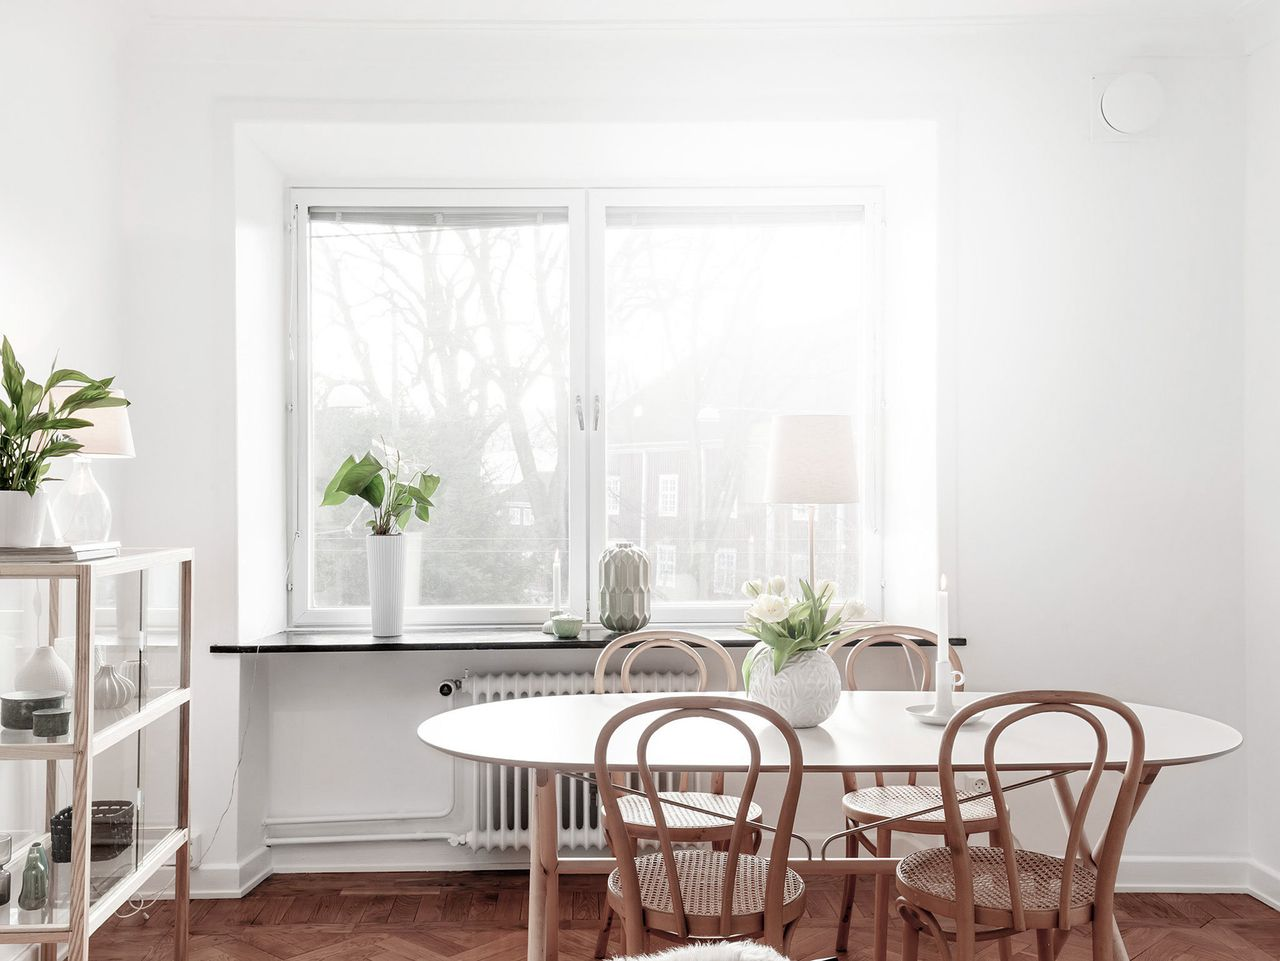 Ikea dining table white - Ikea Dalshult Sl Hult Dining Table Ee What If We Did This